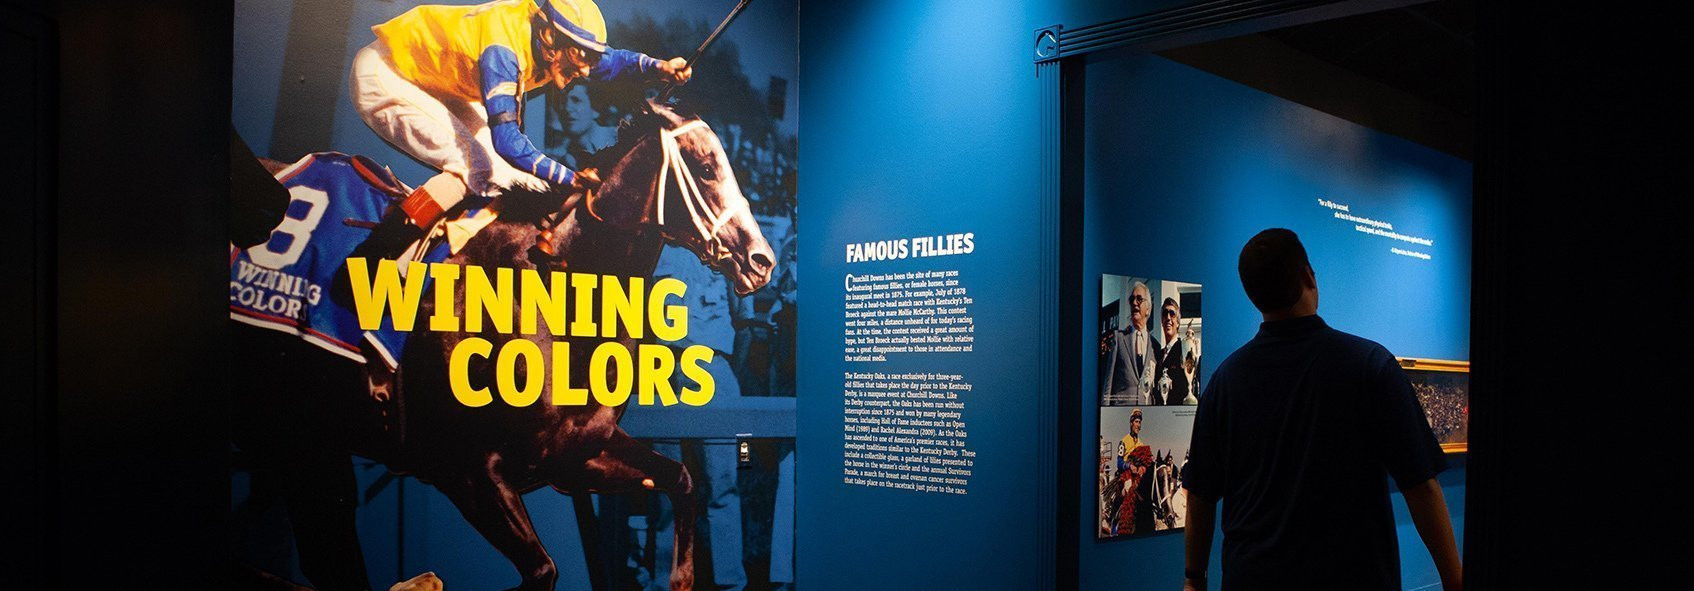 This Exhibit Celebrated The 30th Anniversary Kentucky Derby Win Of Filly Winning Colors Famous Fillies Featured History